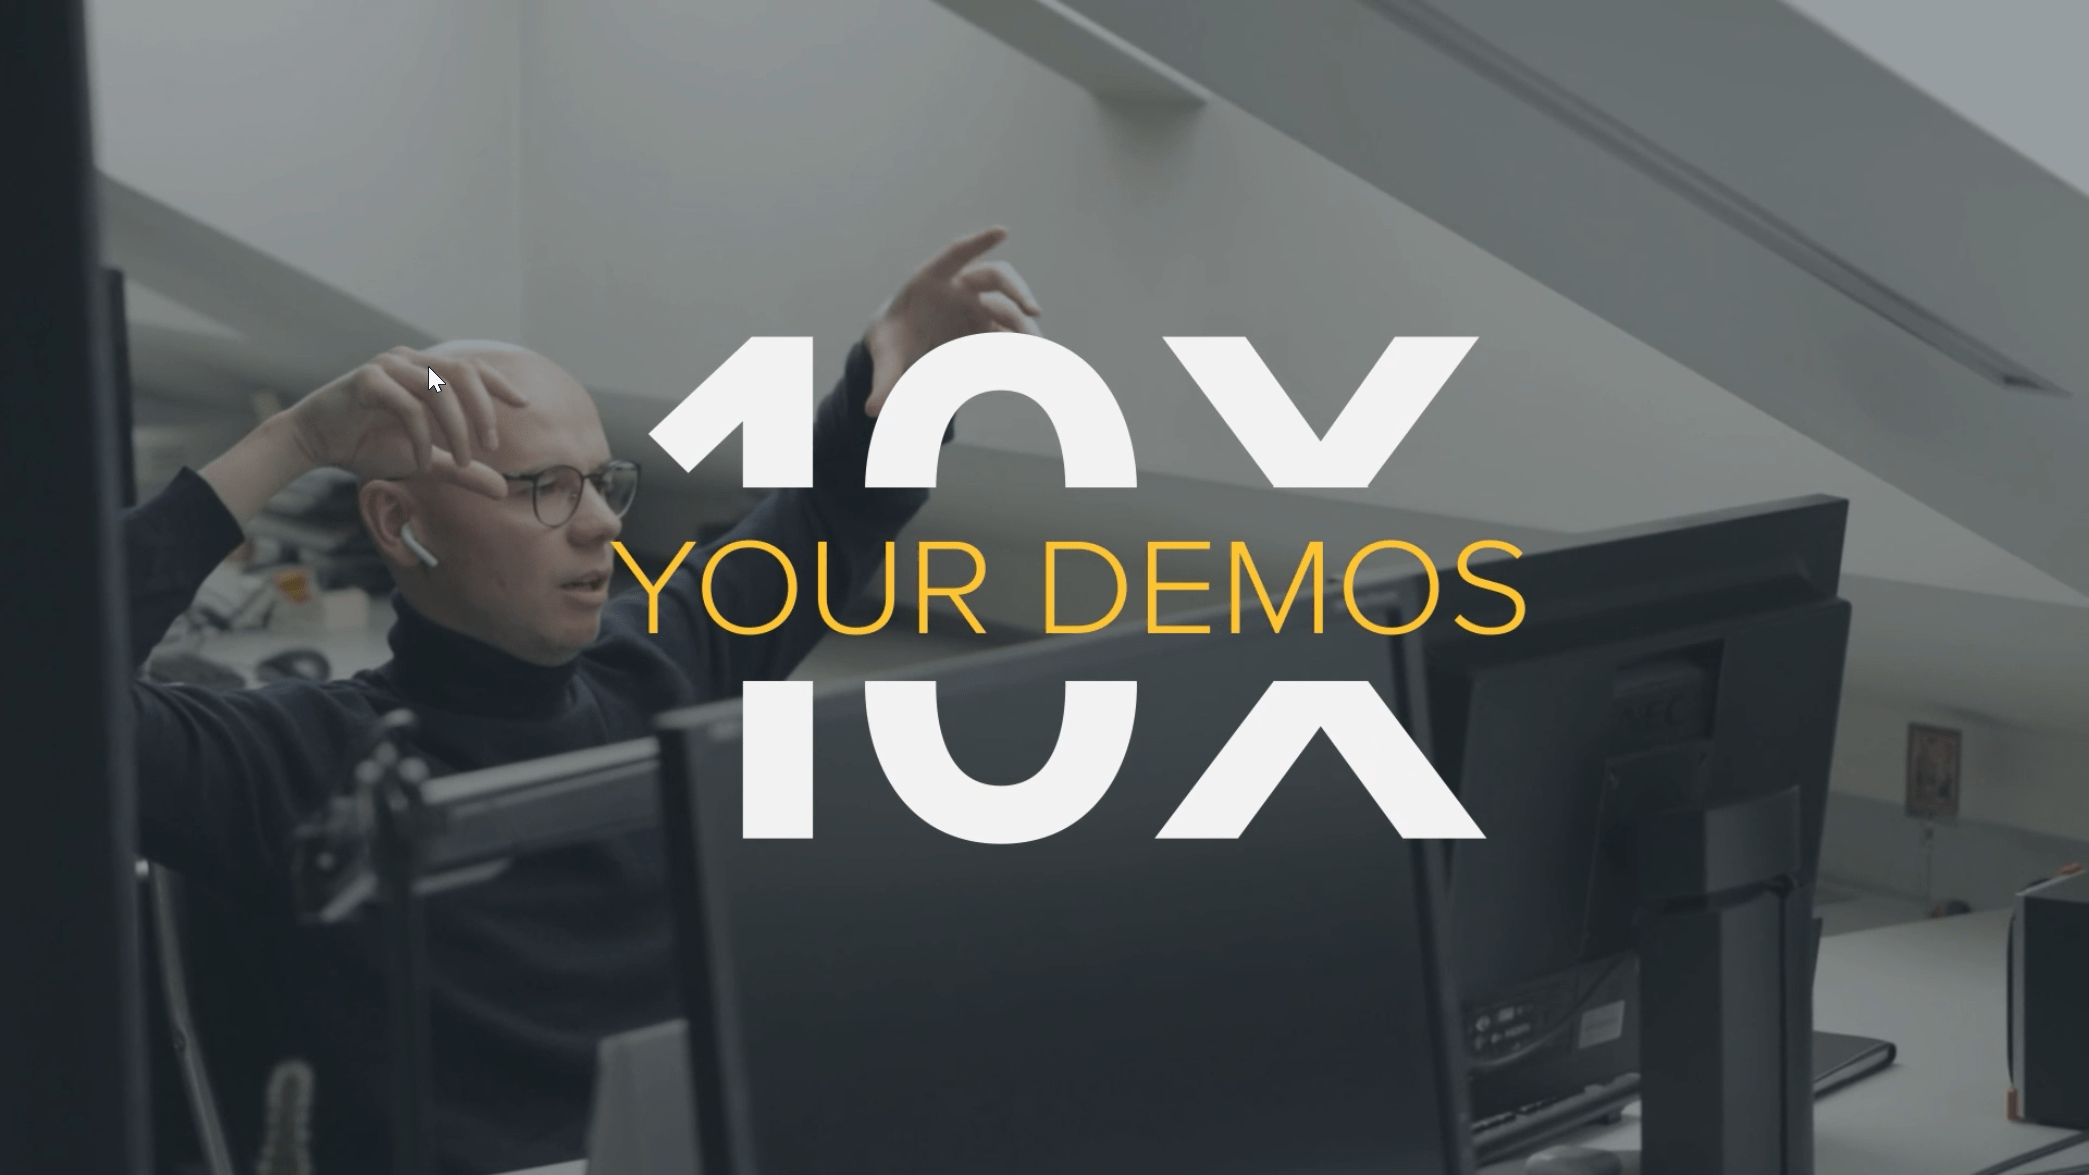 It's Time to 10X Your Live Software Demos